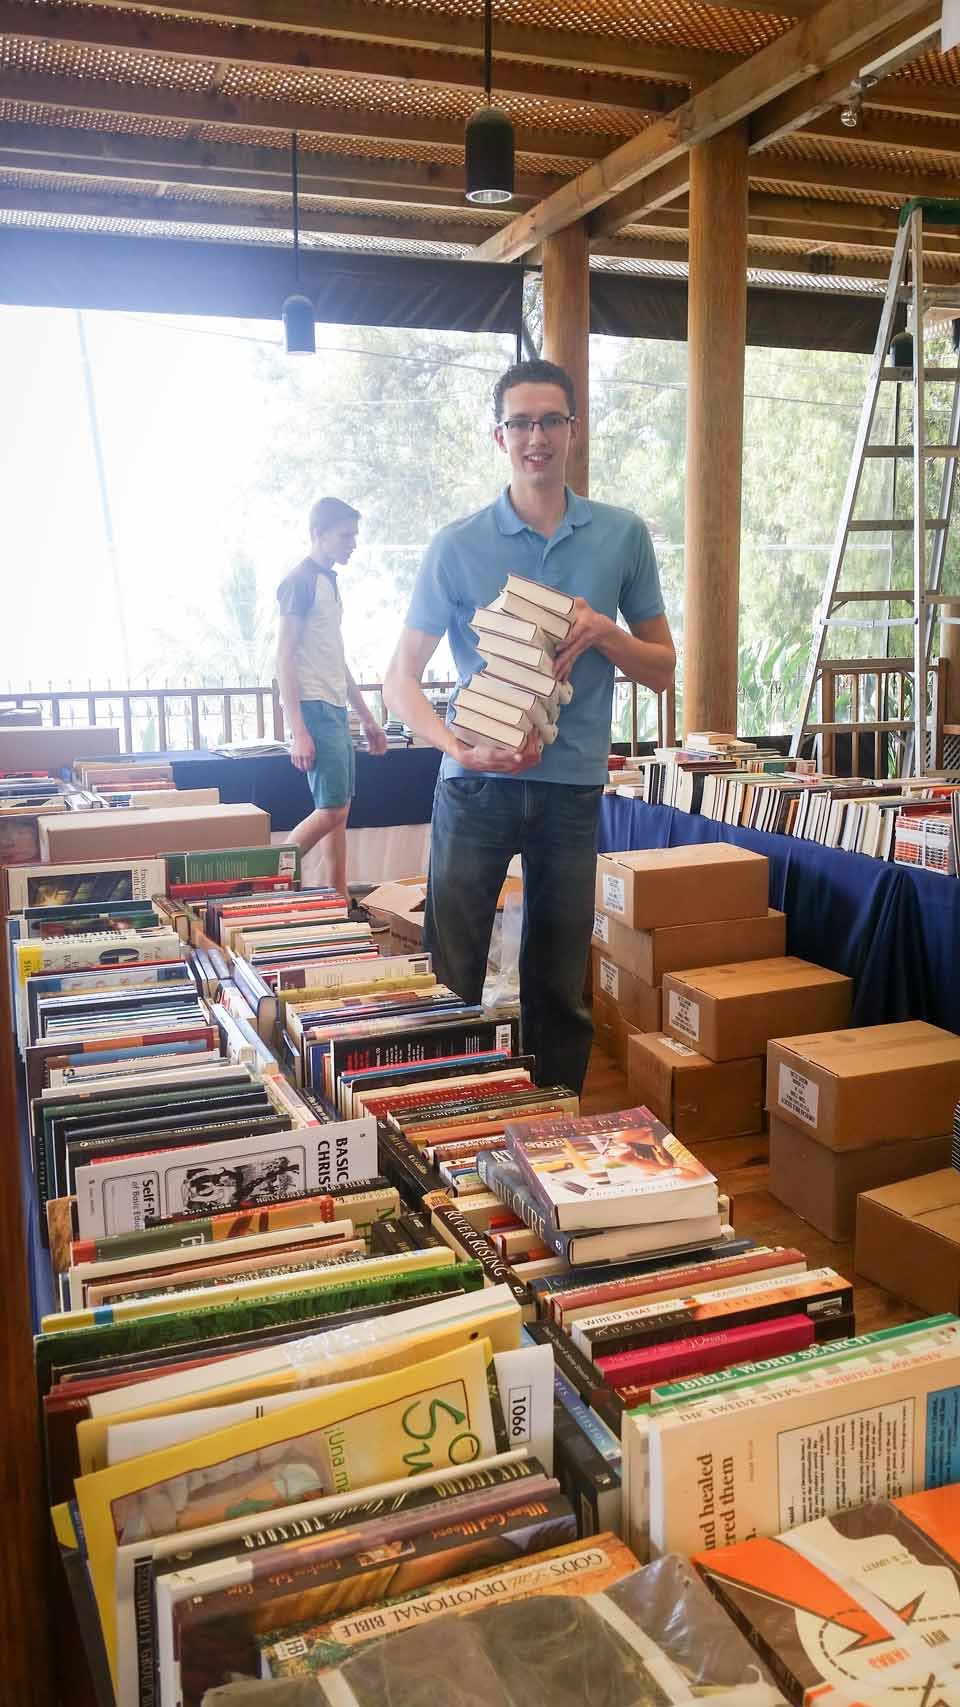 Assisting TJ with setting up his thousands of books for distribution at the Intermissions Conference! Check out Resourcing NOW on Facebook: https://www.facebook.com/ResourcingNow